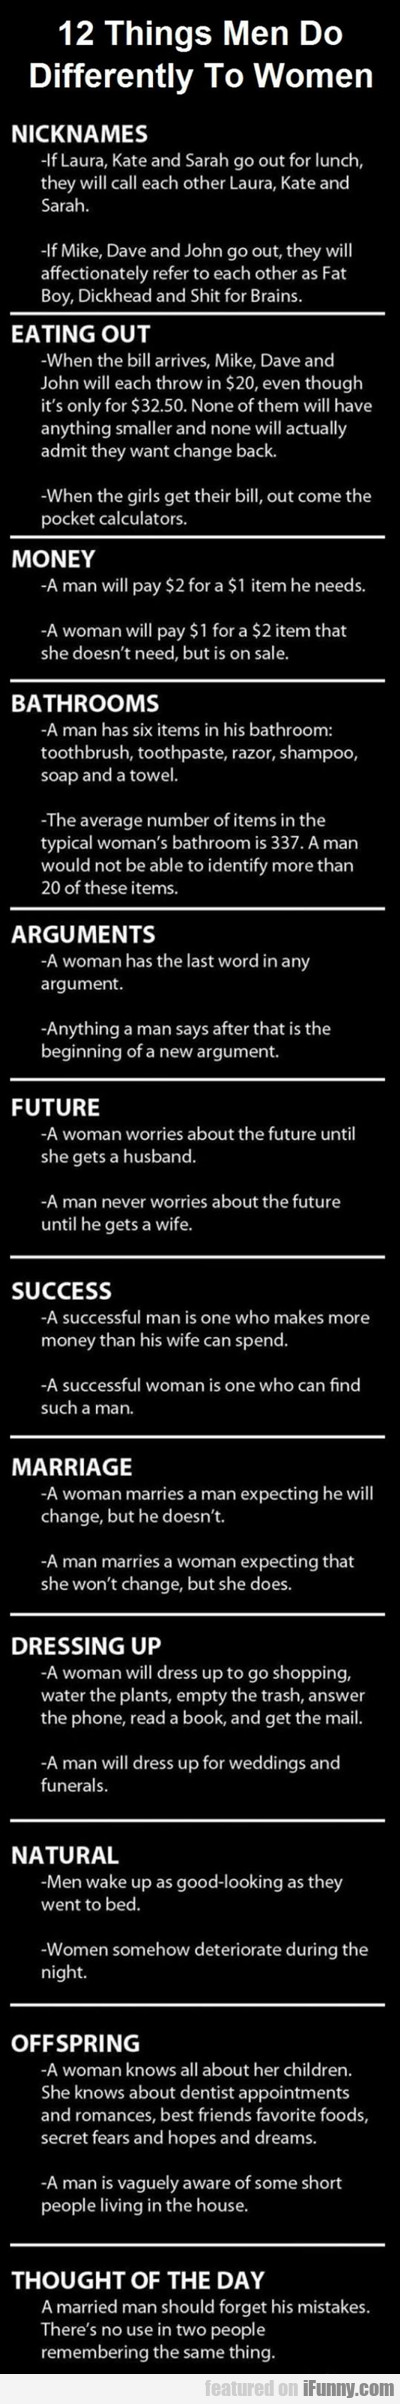 12 things men do differently than women...